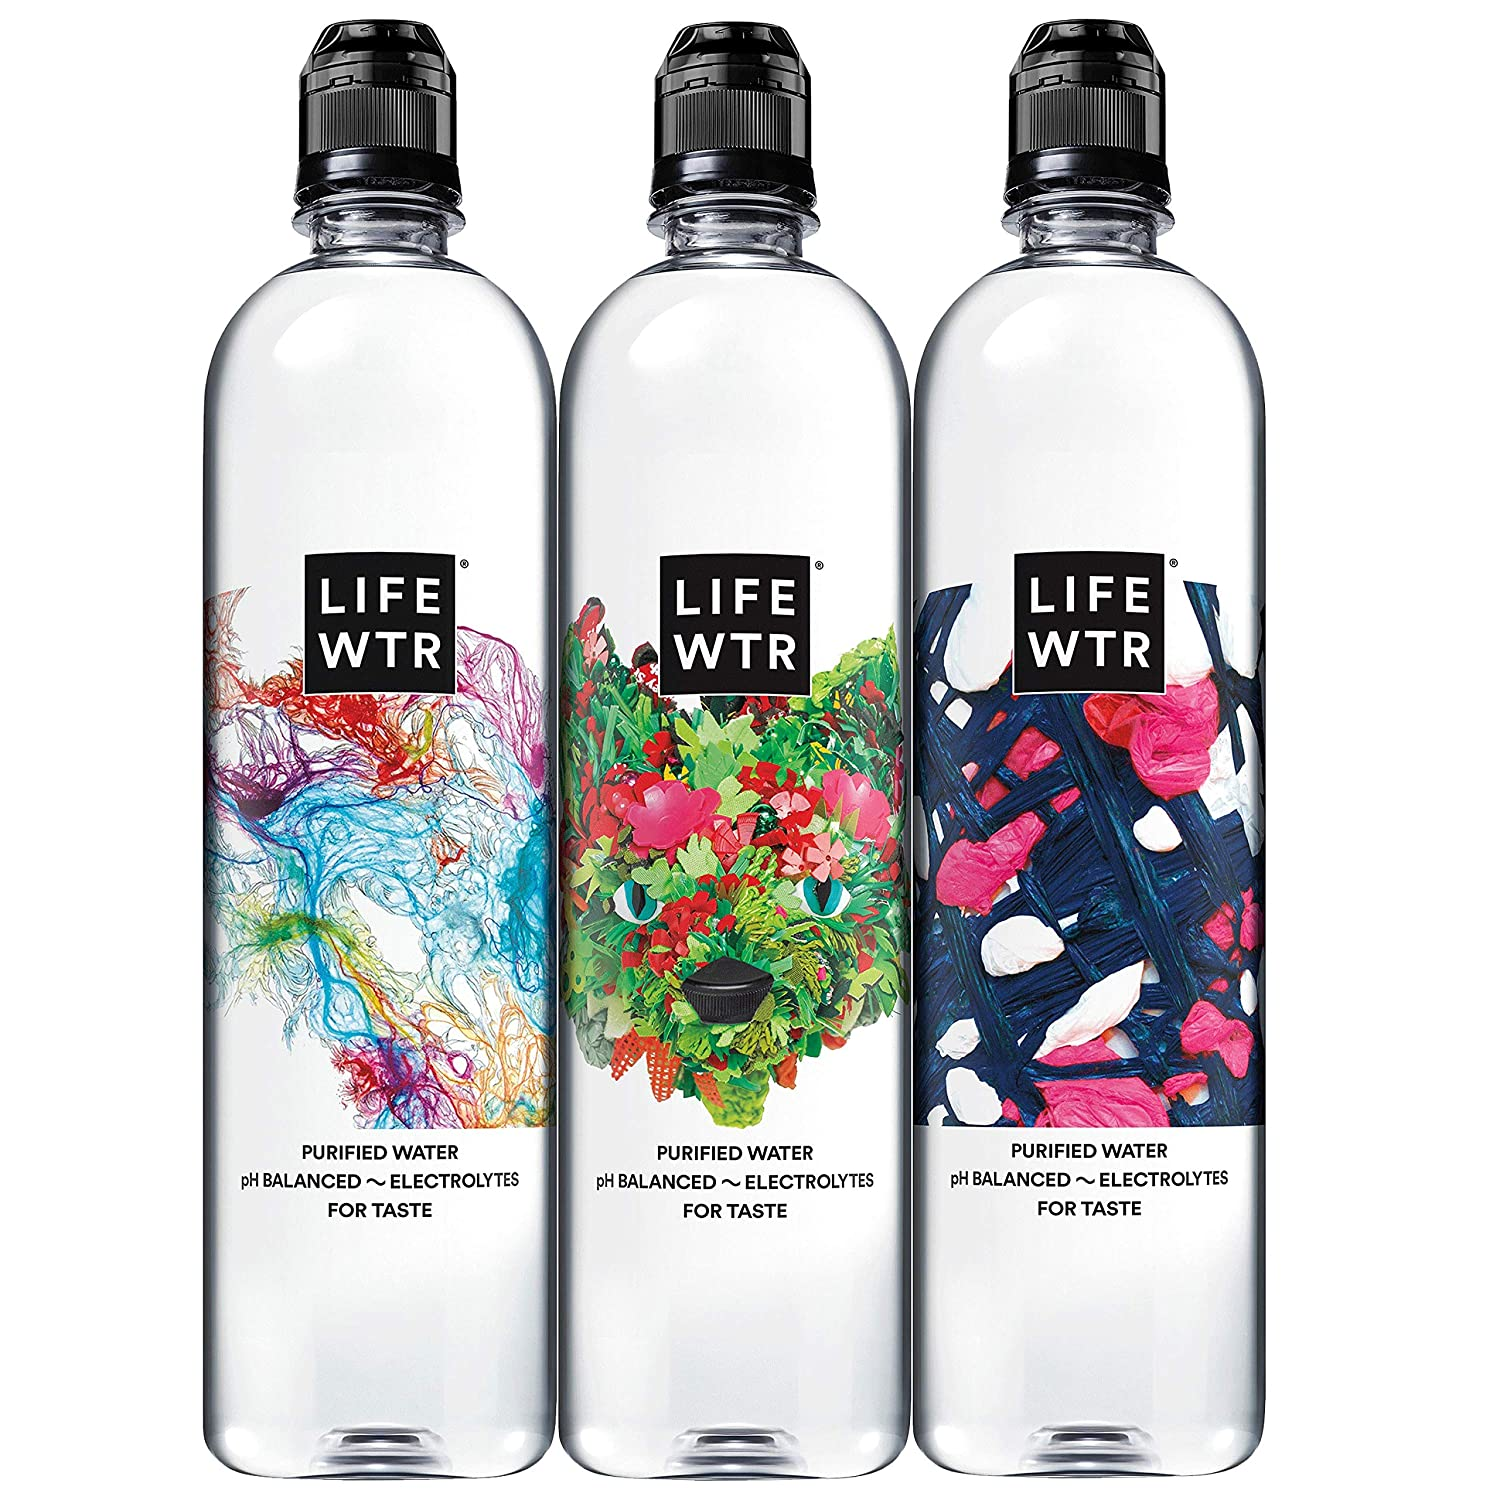 LIFEWTR Premium Purified Water, pH Balanced with Electrolytes For Taste,23.7 Fl Oz Flip Cap Bottles,700 mL (12 Count)